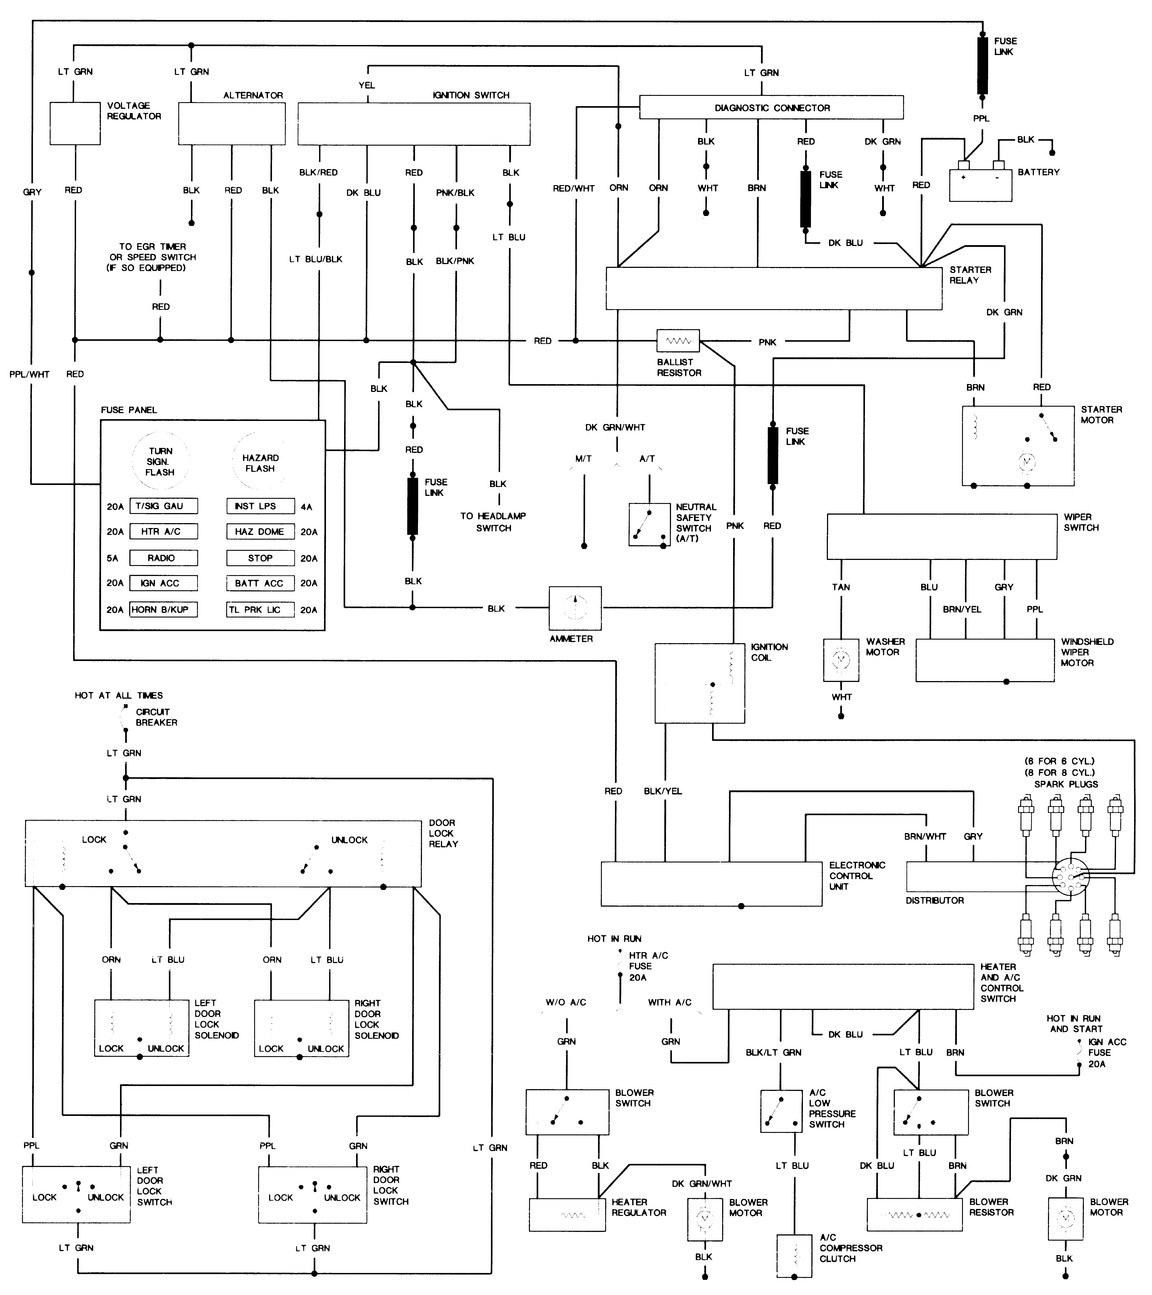 76 dodge wiring diagram